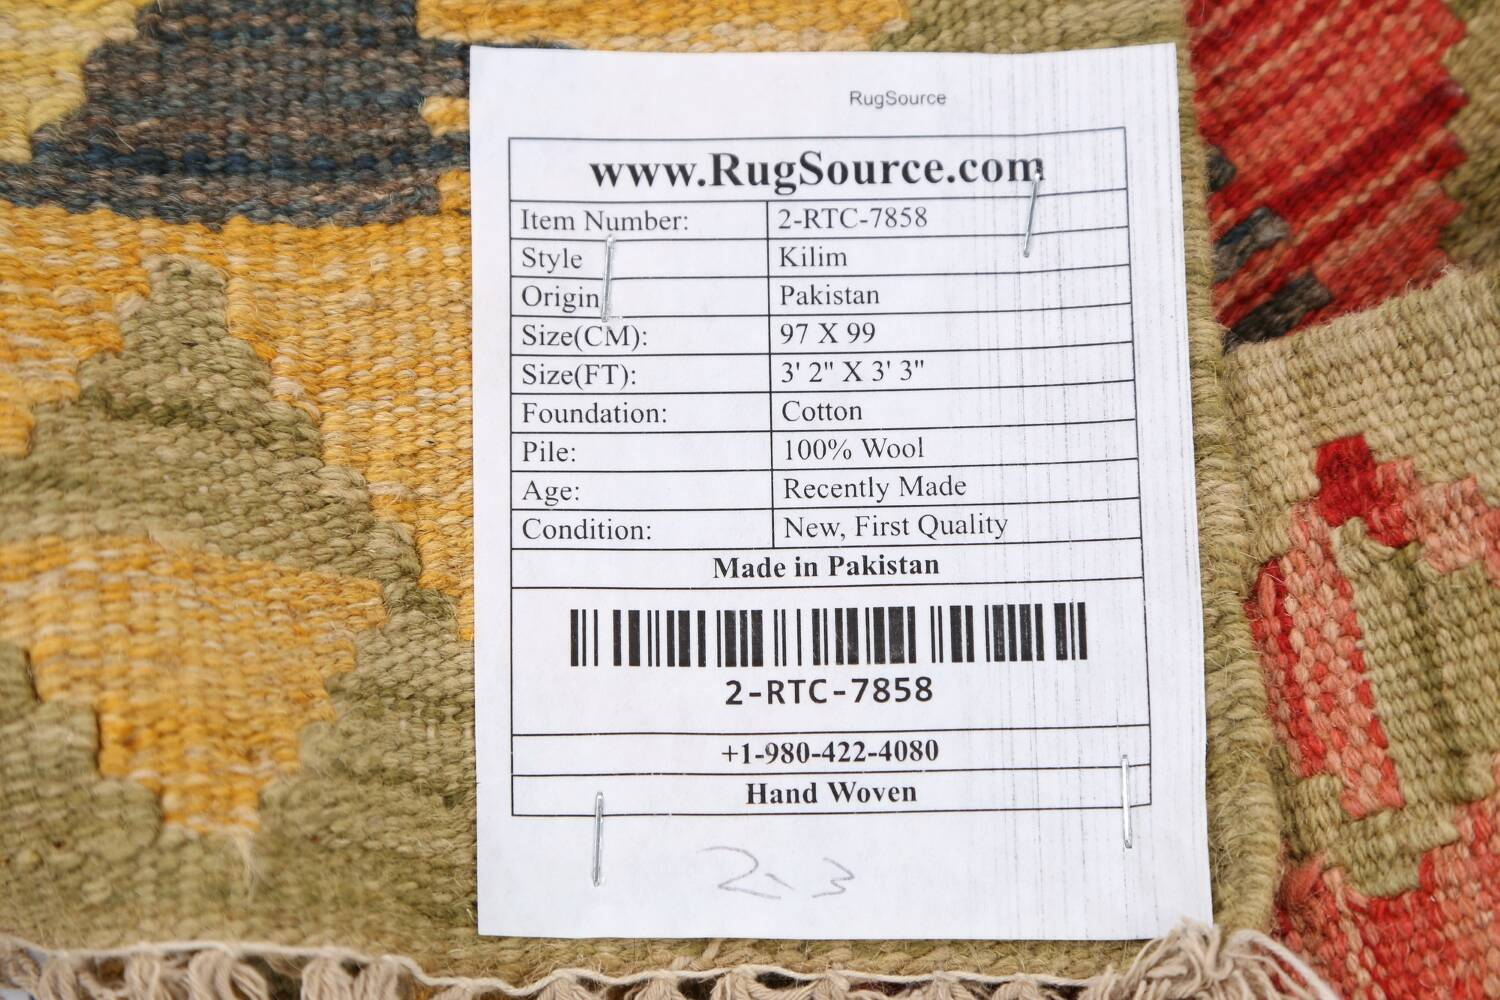 South-Western Reversible Kilim Oriental Area Rug 3x3 Square image 18